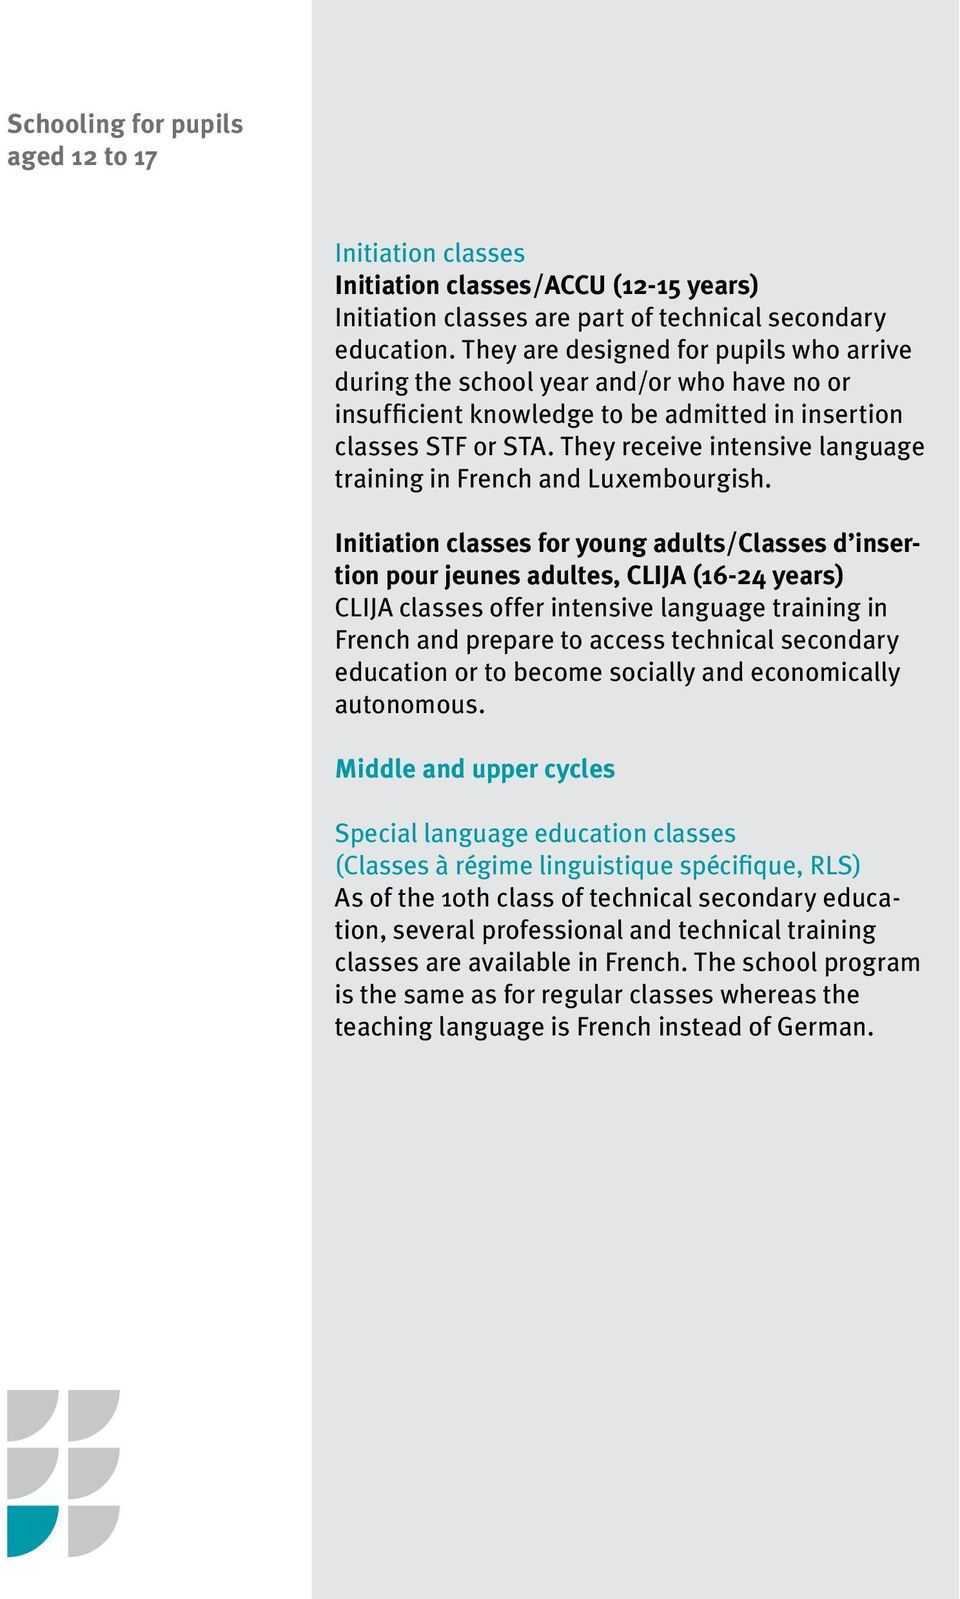 They receive intensive language training in French and Luxembourgish.